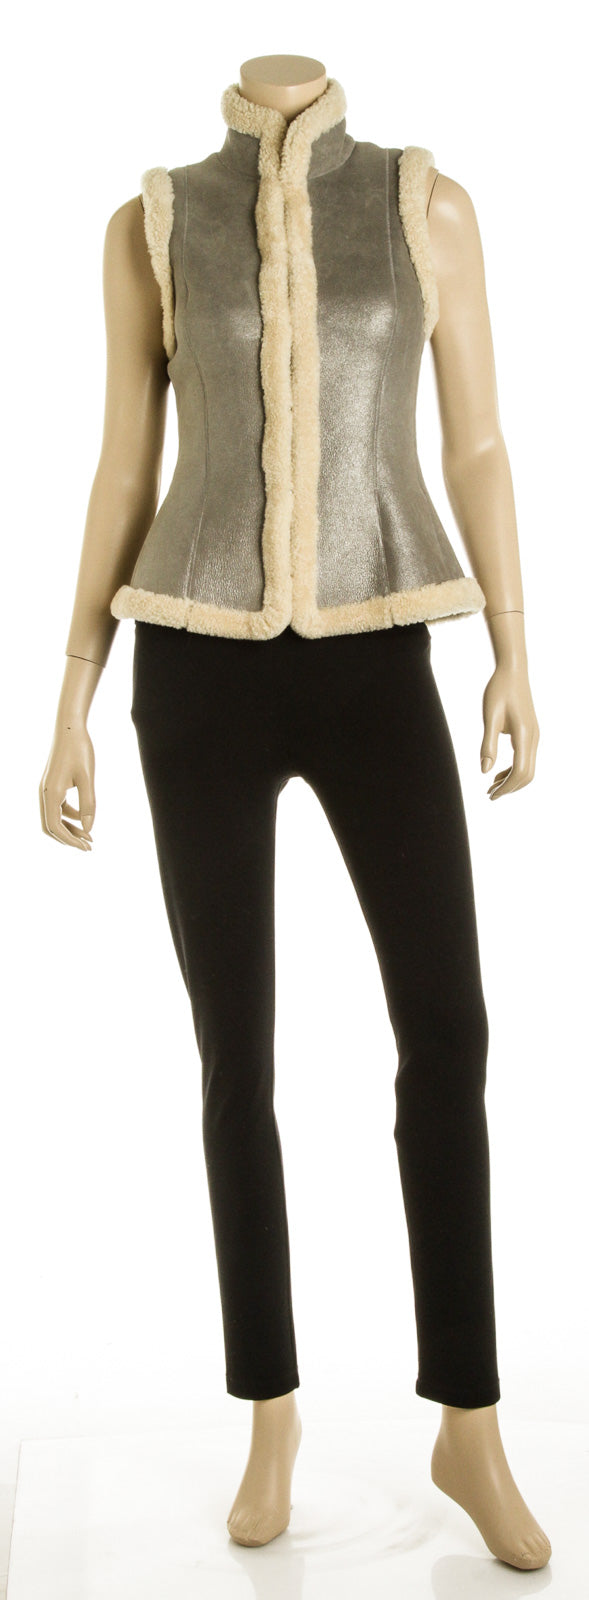 Ralph Lauren Gray and Beige Lamb Shearling Vest (Size S)